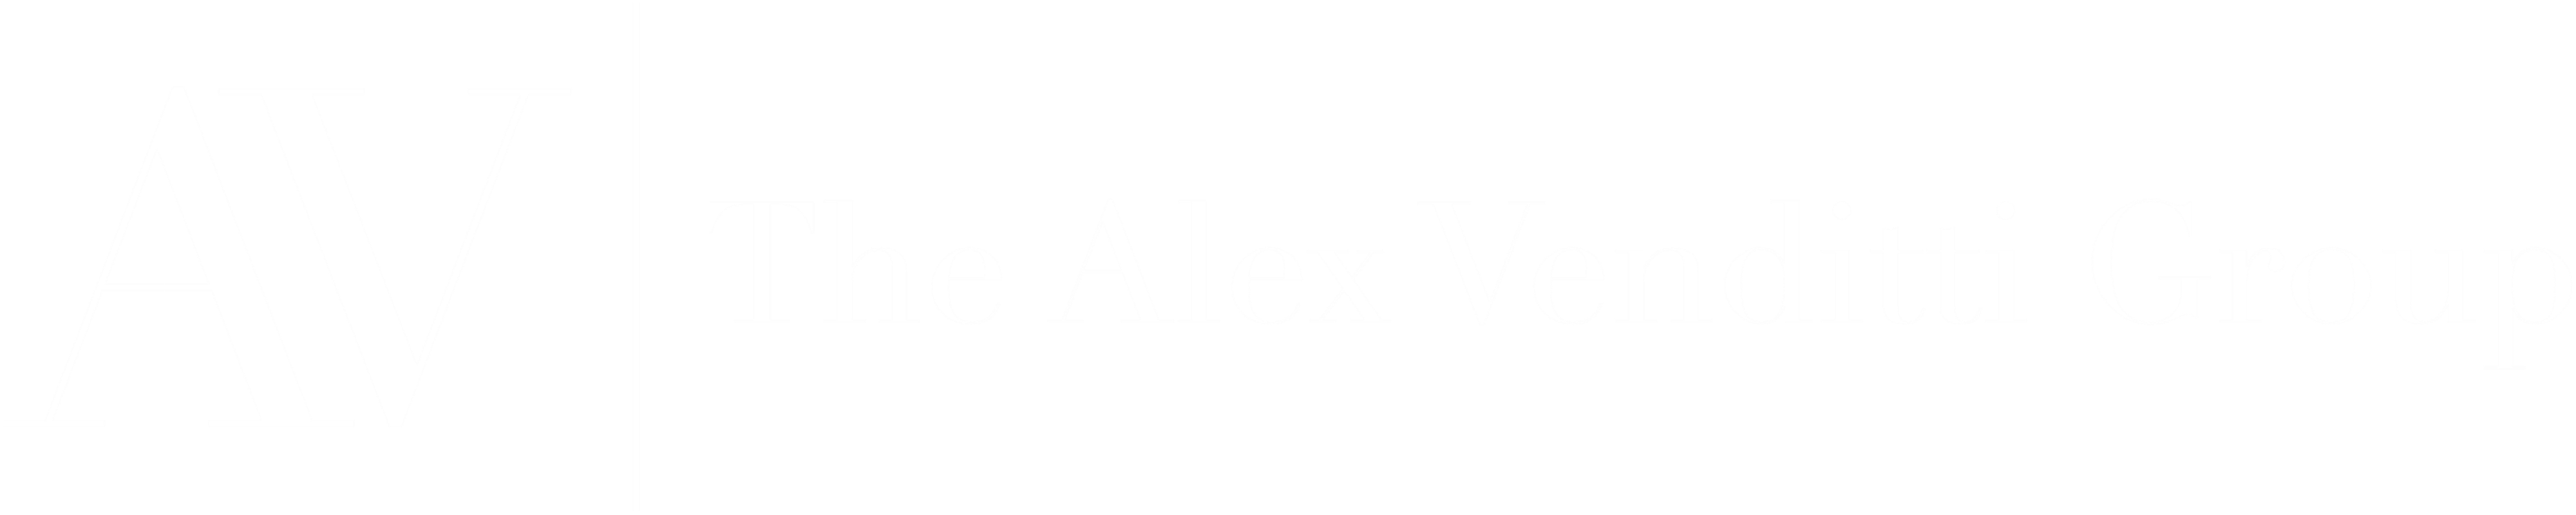 The Alex Venditti Group